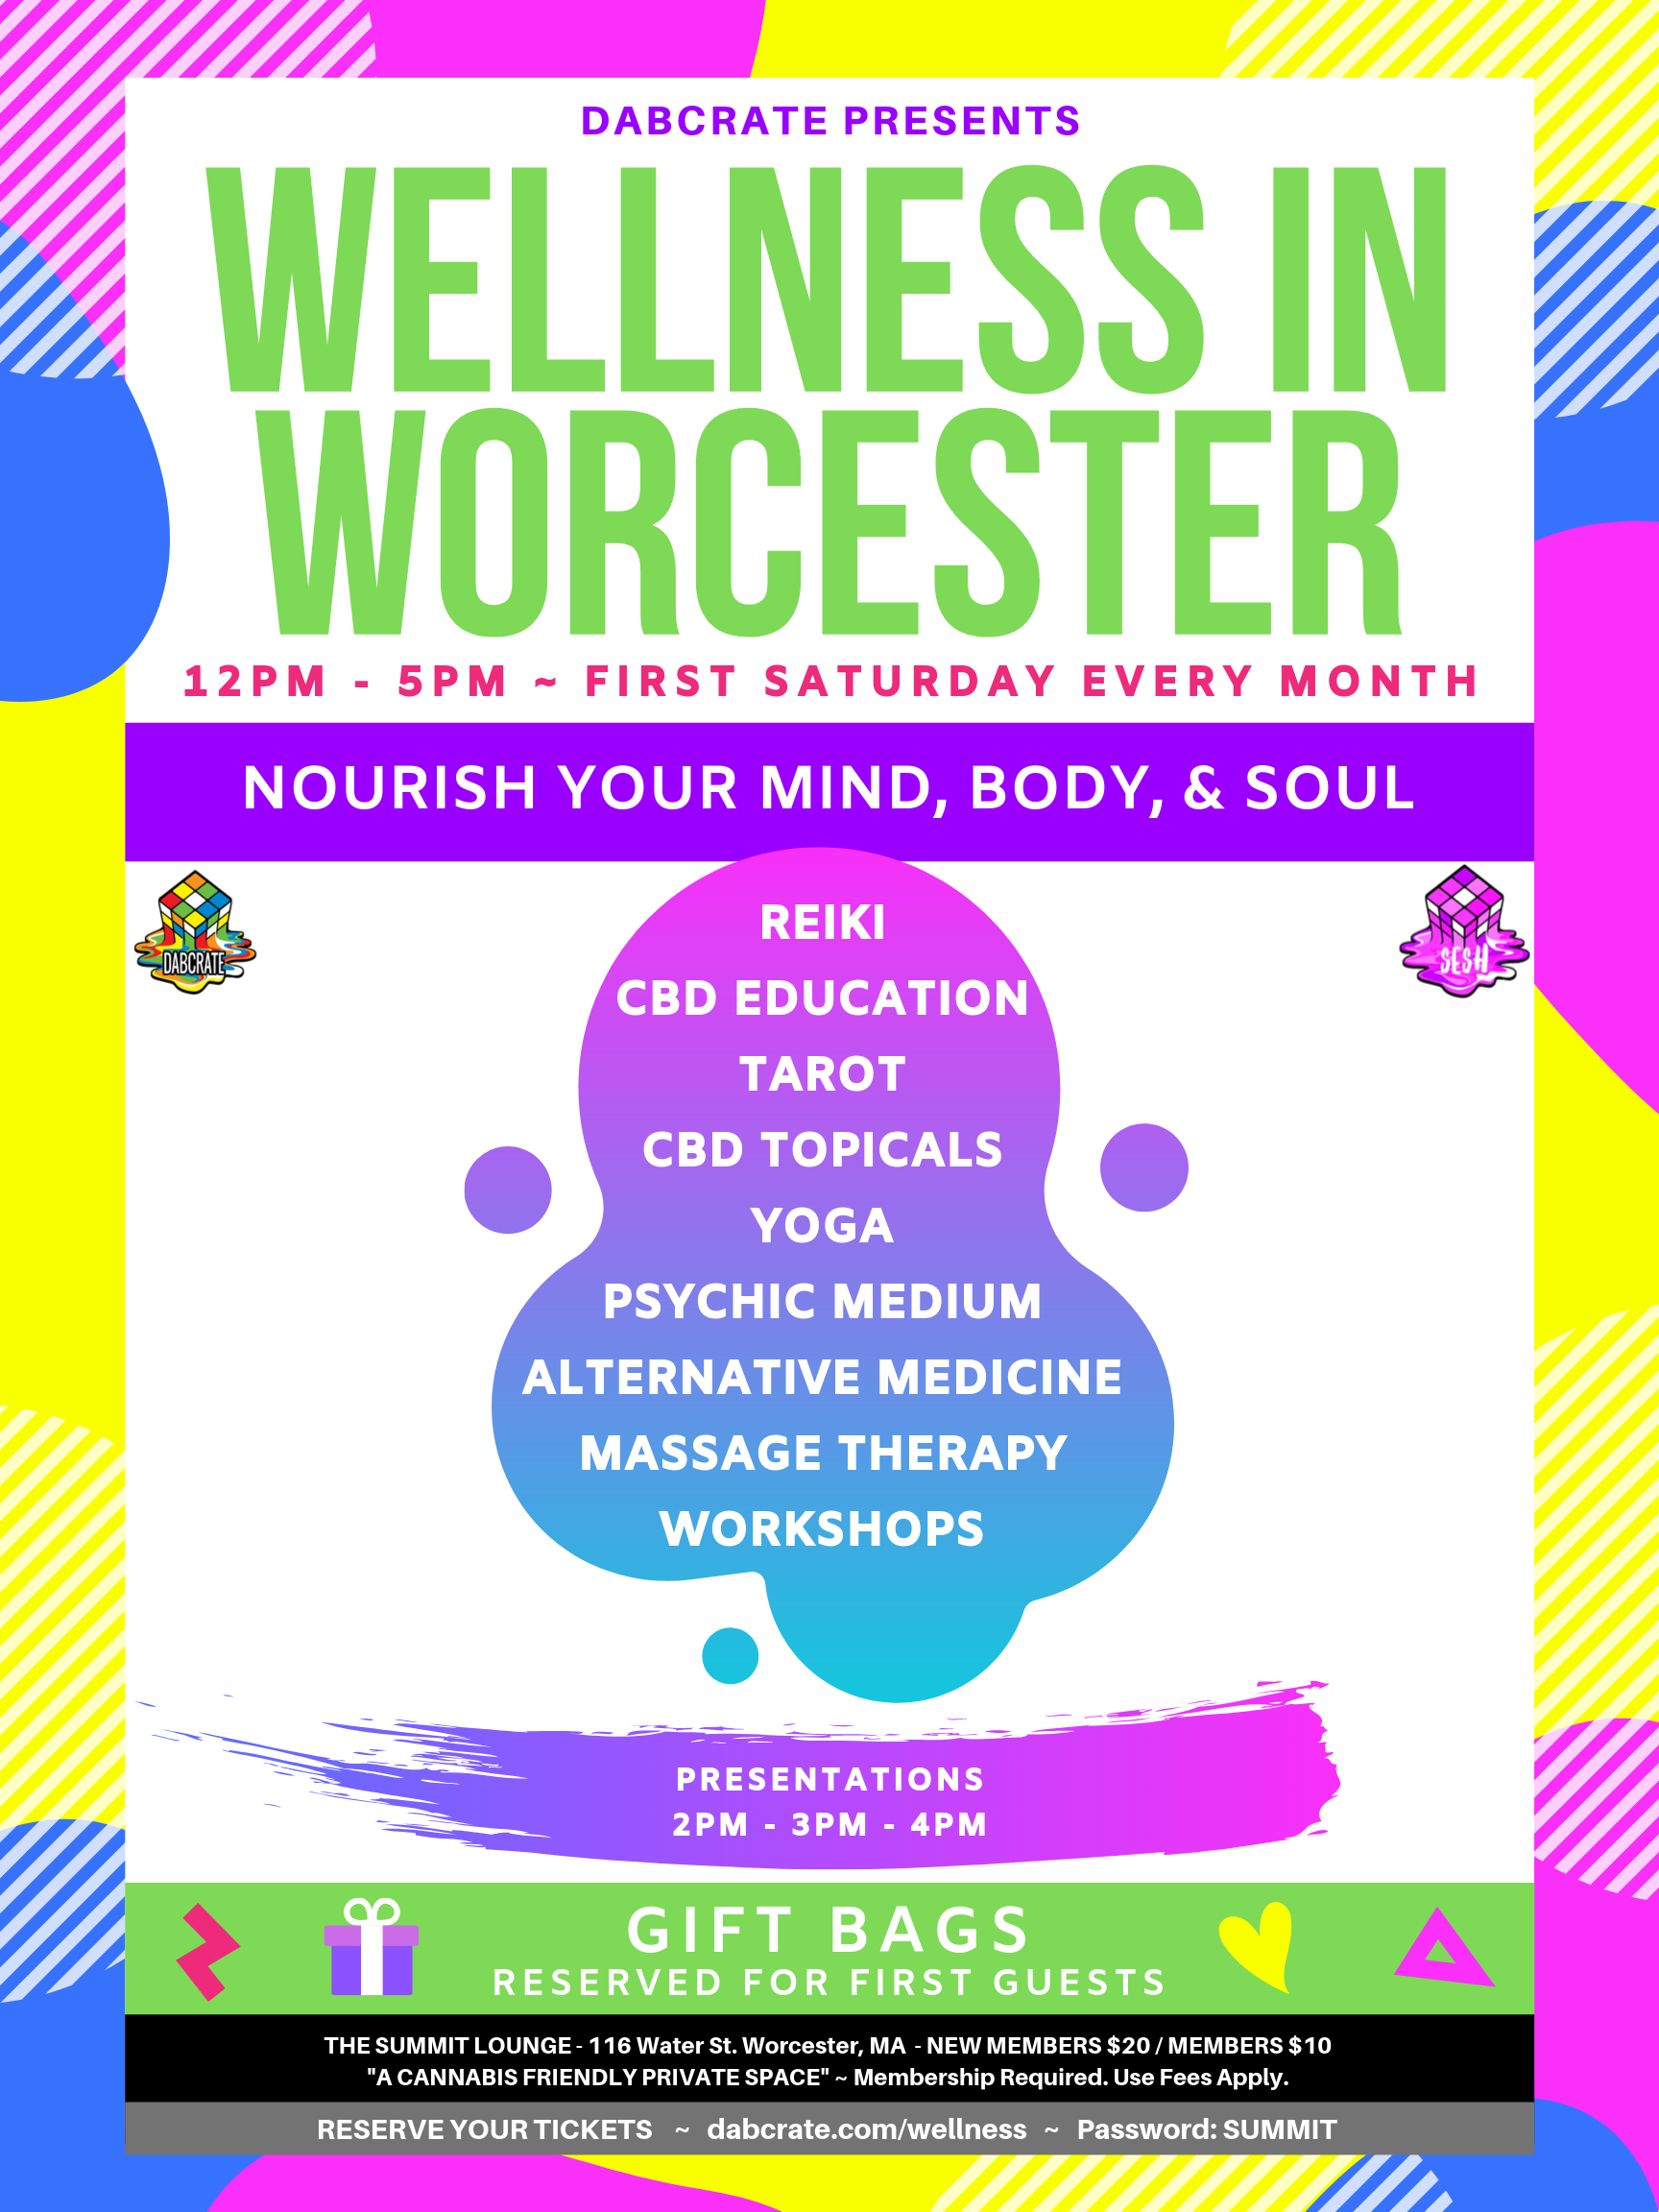 wellmess in worcester cannabis event